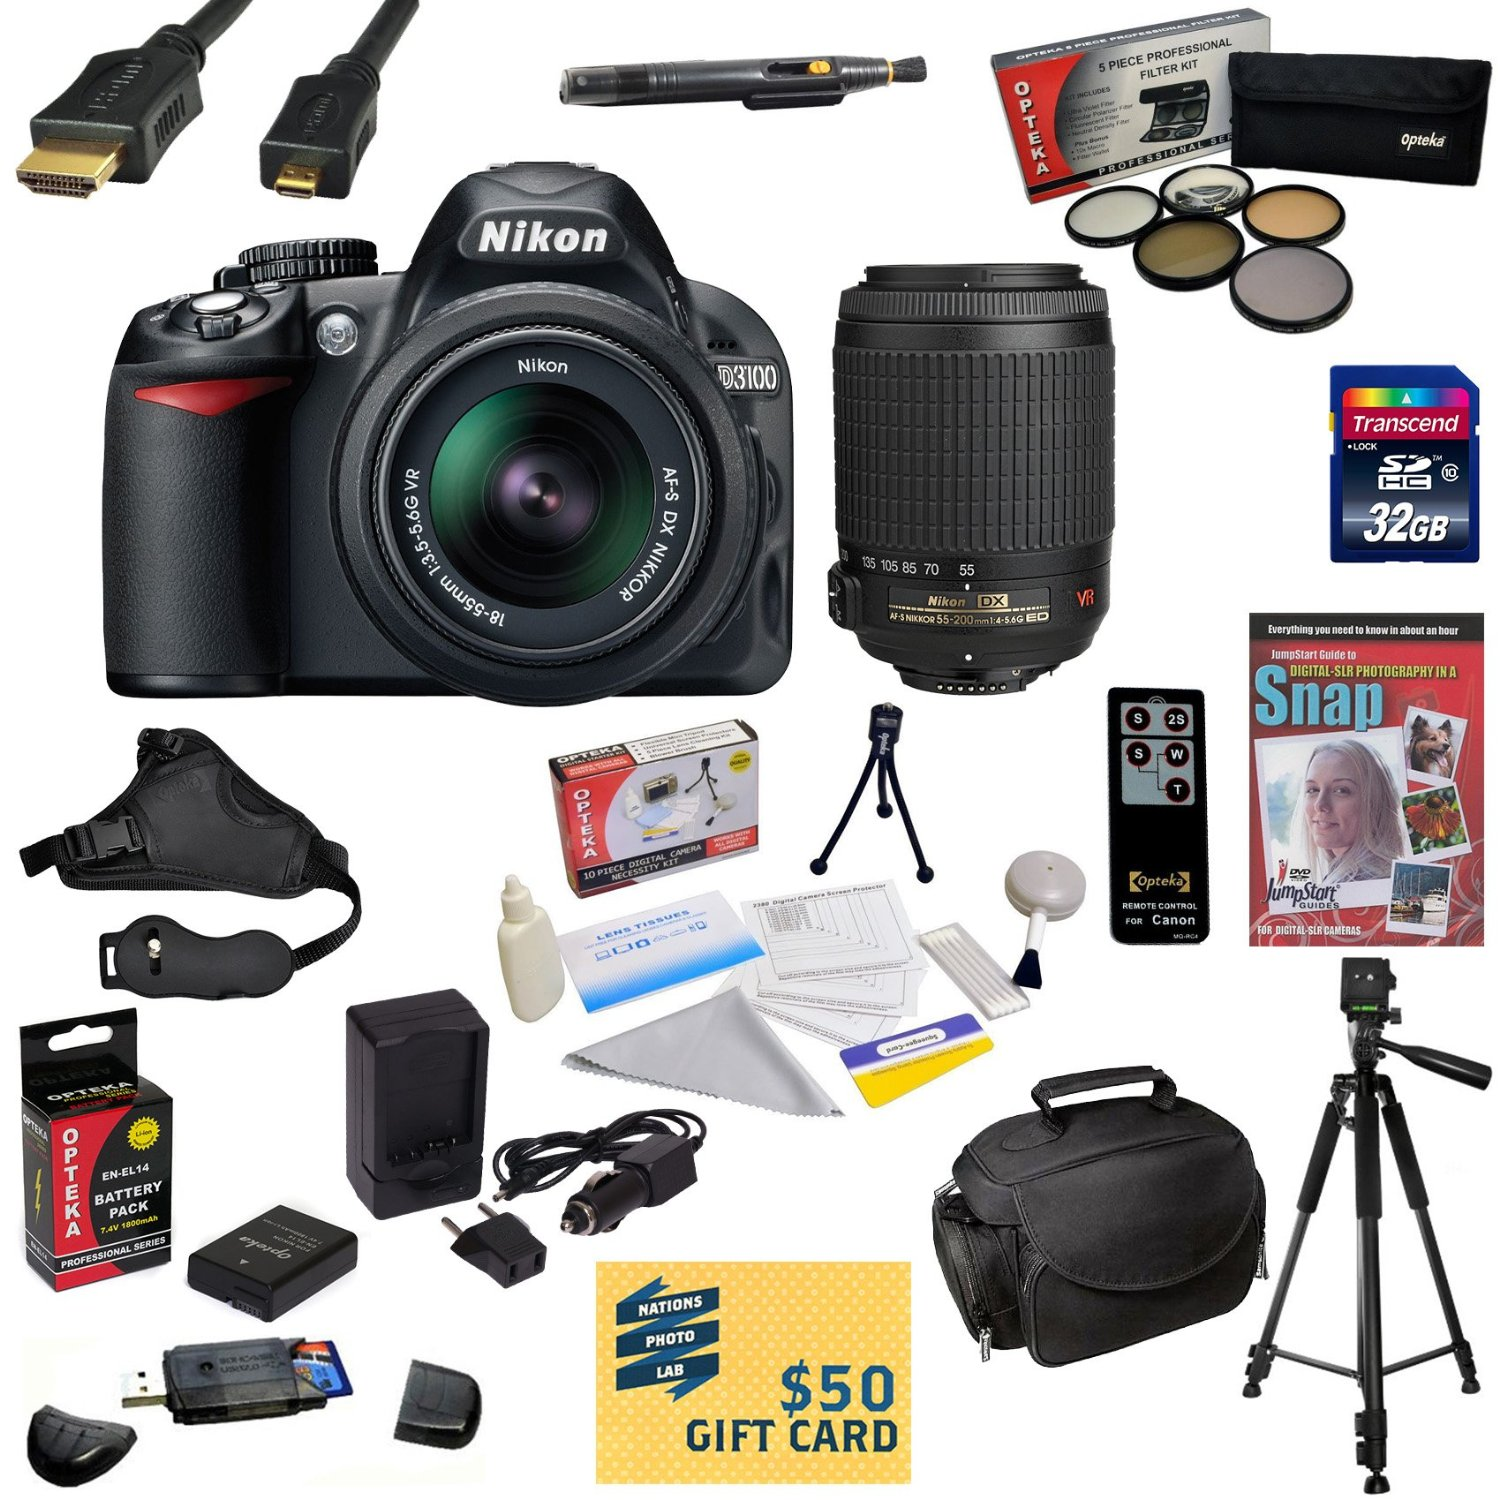 Nikon D3100 Digital SLR Camera with 18-55mm & 55-200mm NIKKOR VR Lens With 32GB SDHC Card, Reader, Battery, Charger, 5 Piece Filter Kit, HDMI Cable, Bag, Tripod, Cleaning Kit, DVD, $50 Gift Card, More